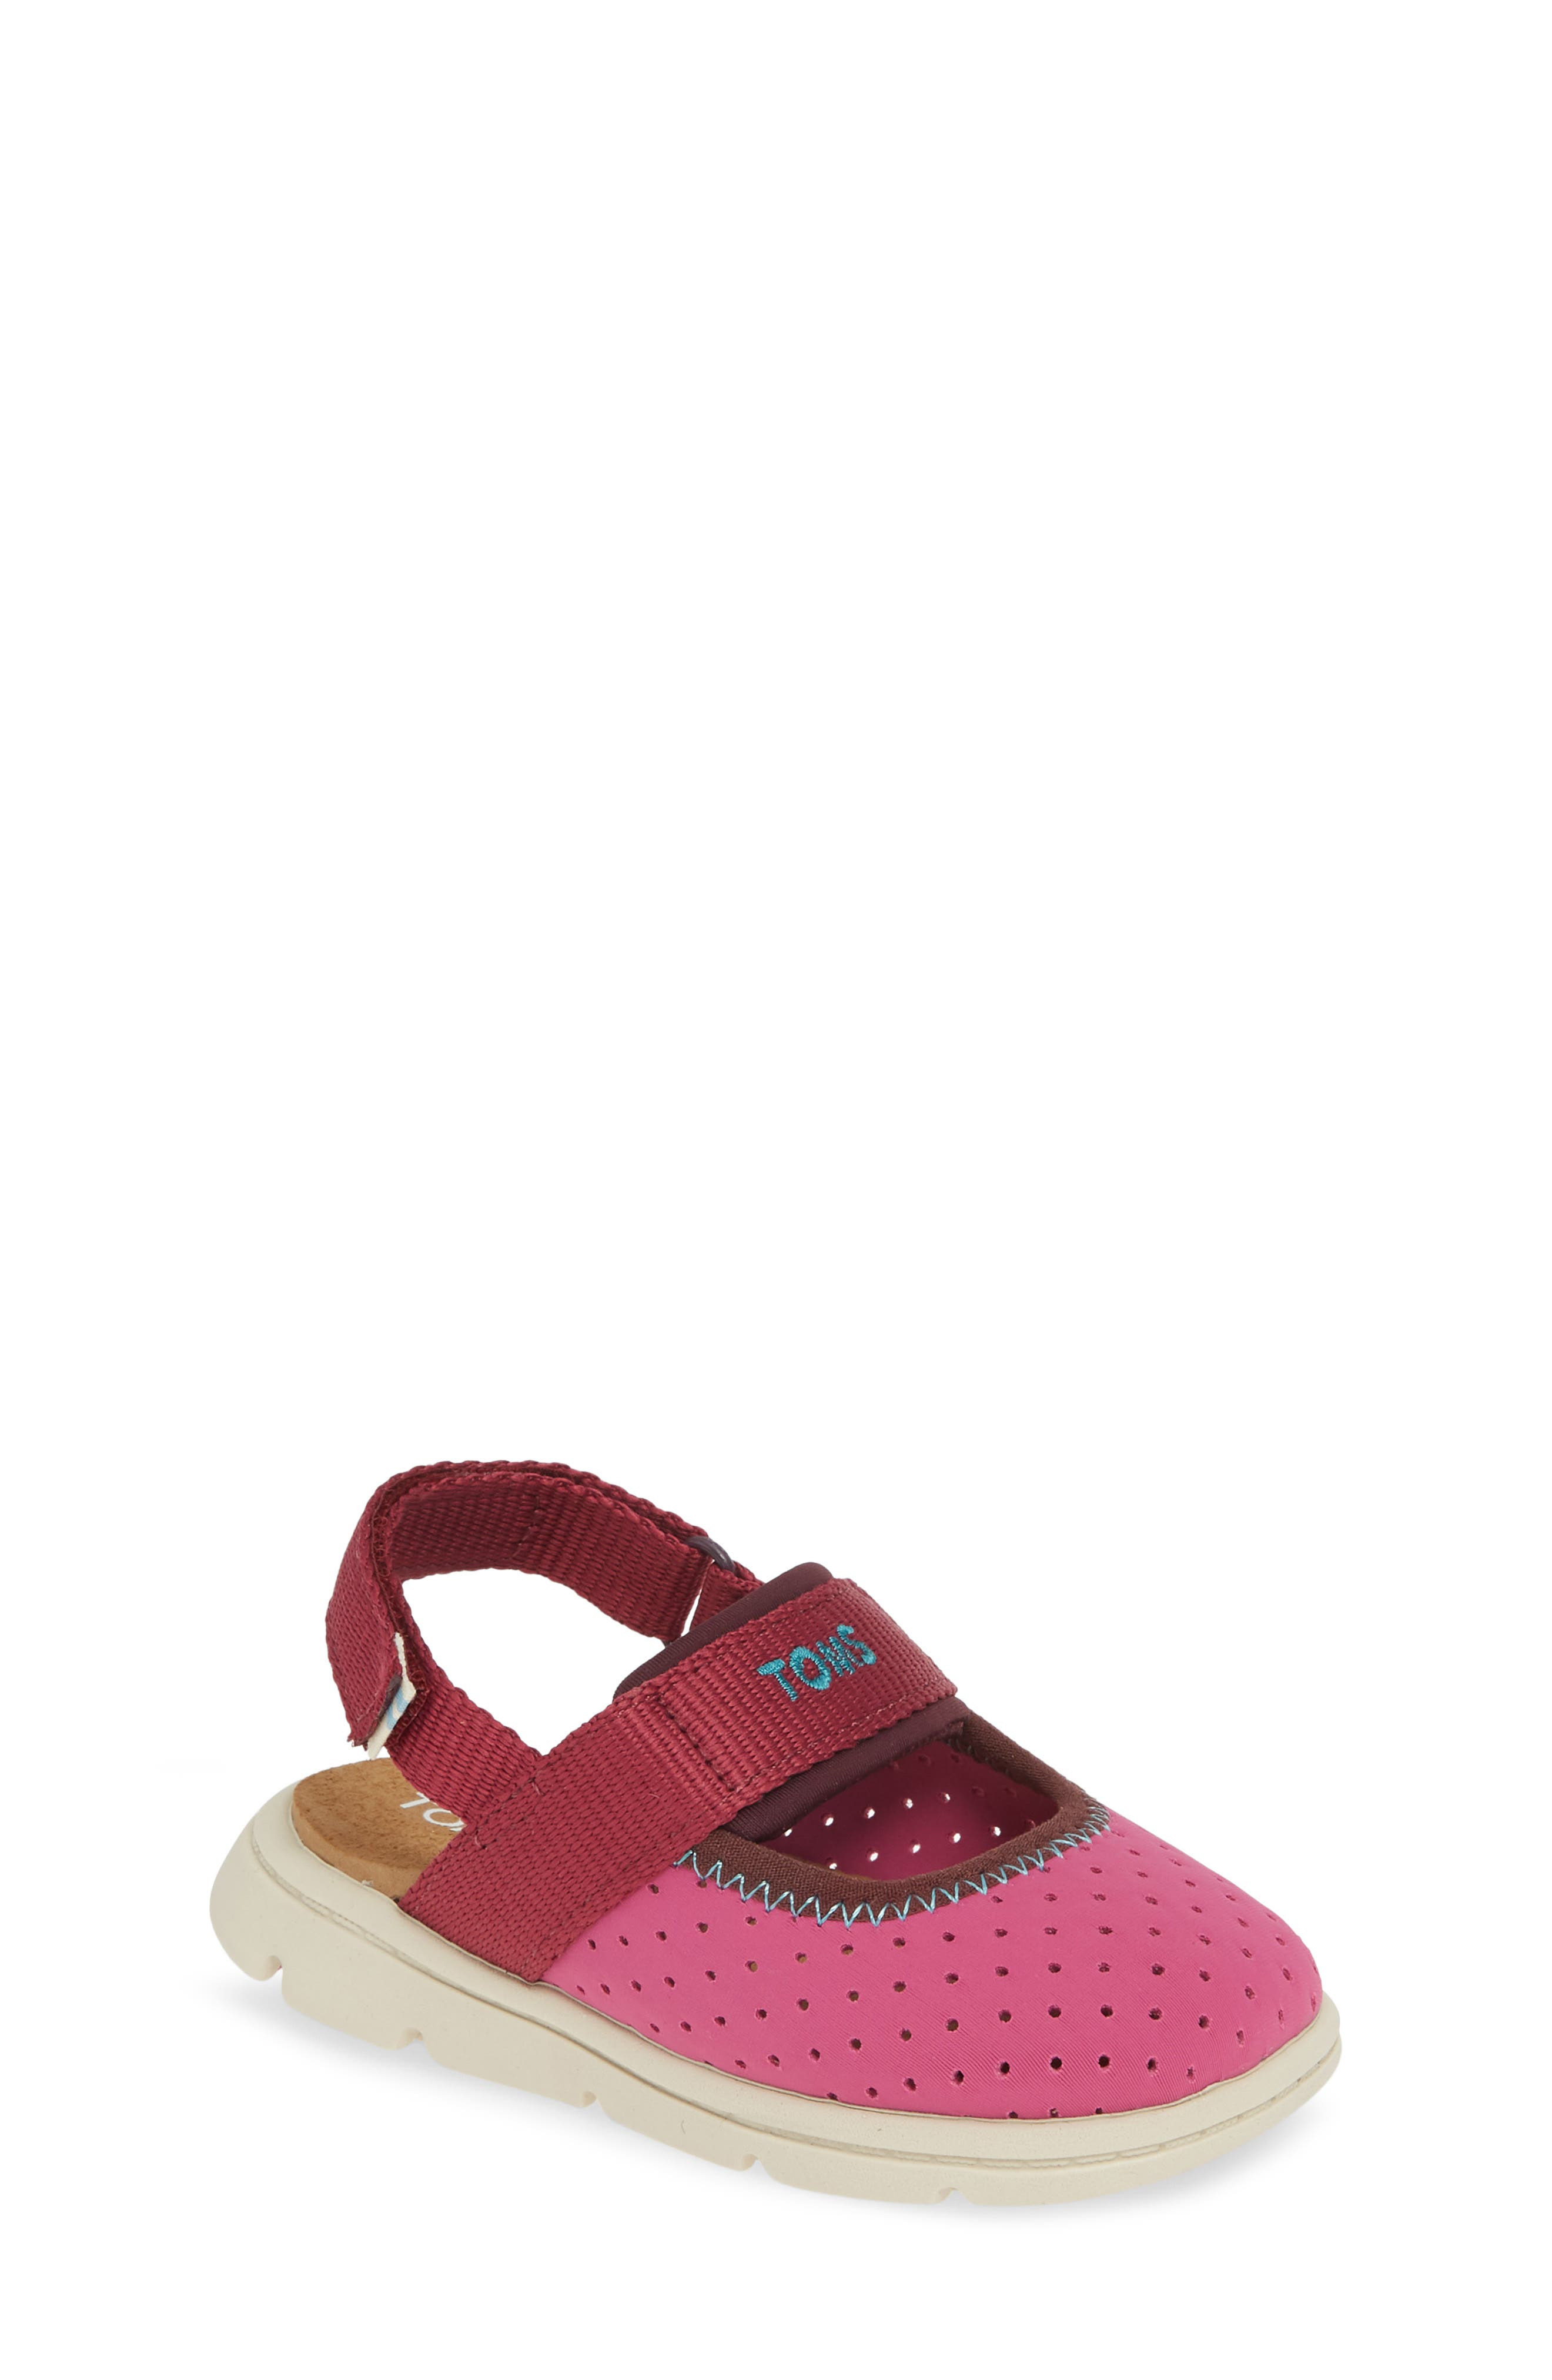 Toms Caity Water Friendly Sandal